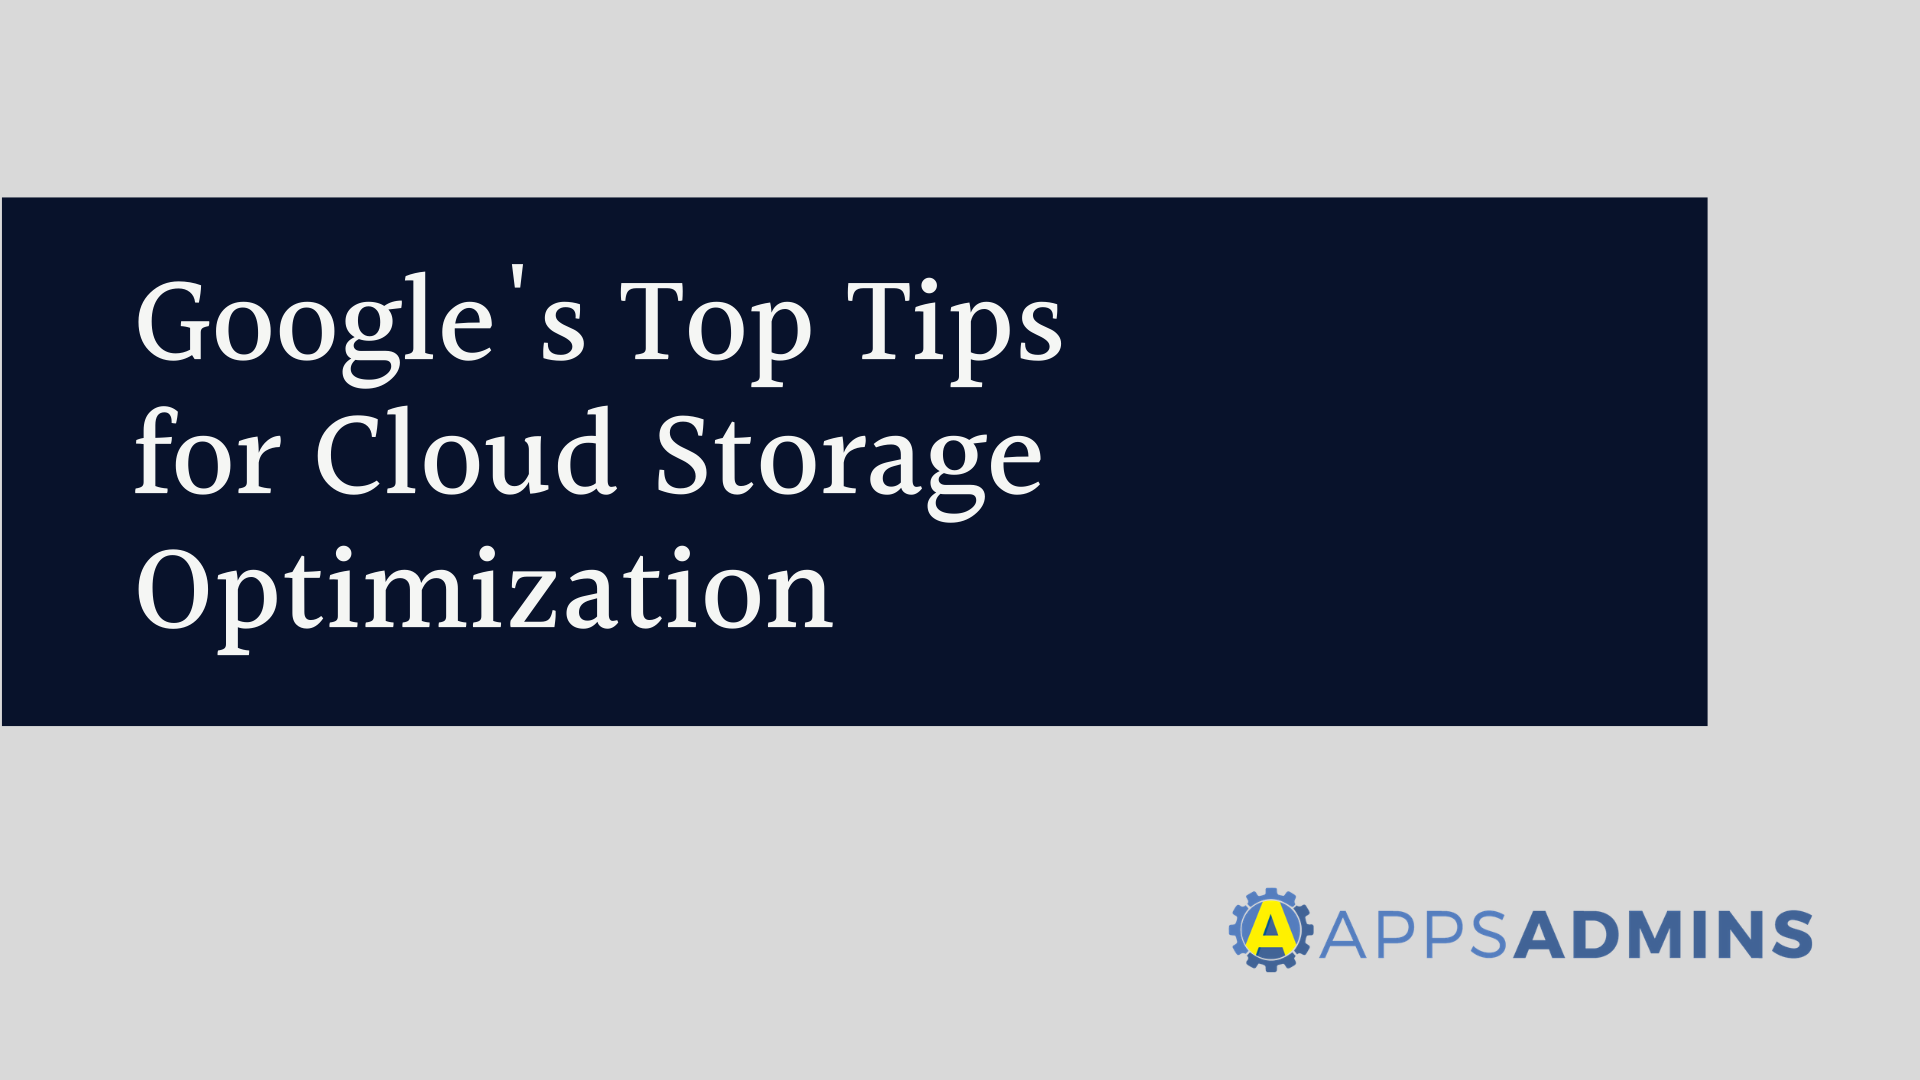 Google's Top Tips for Cloud Storage Optimization